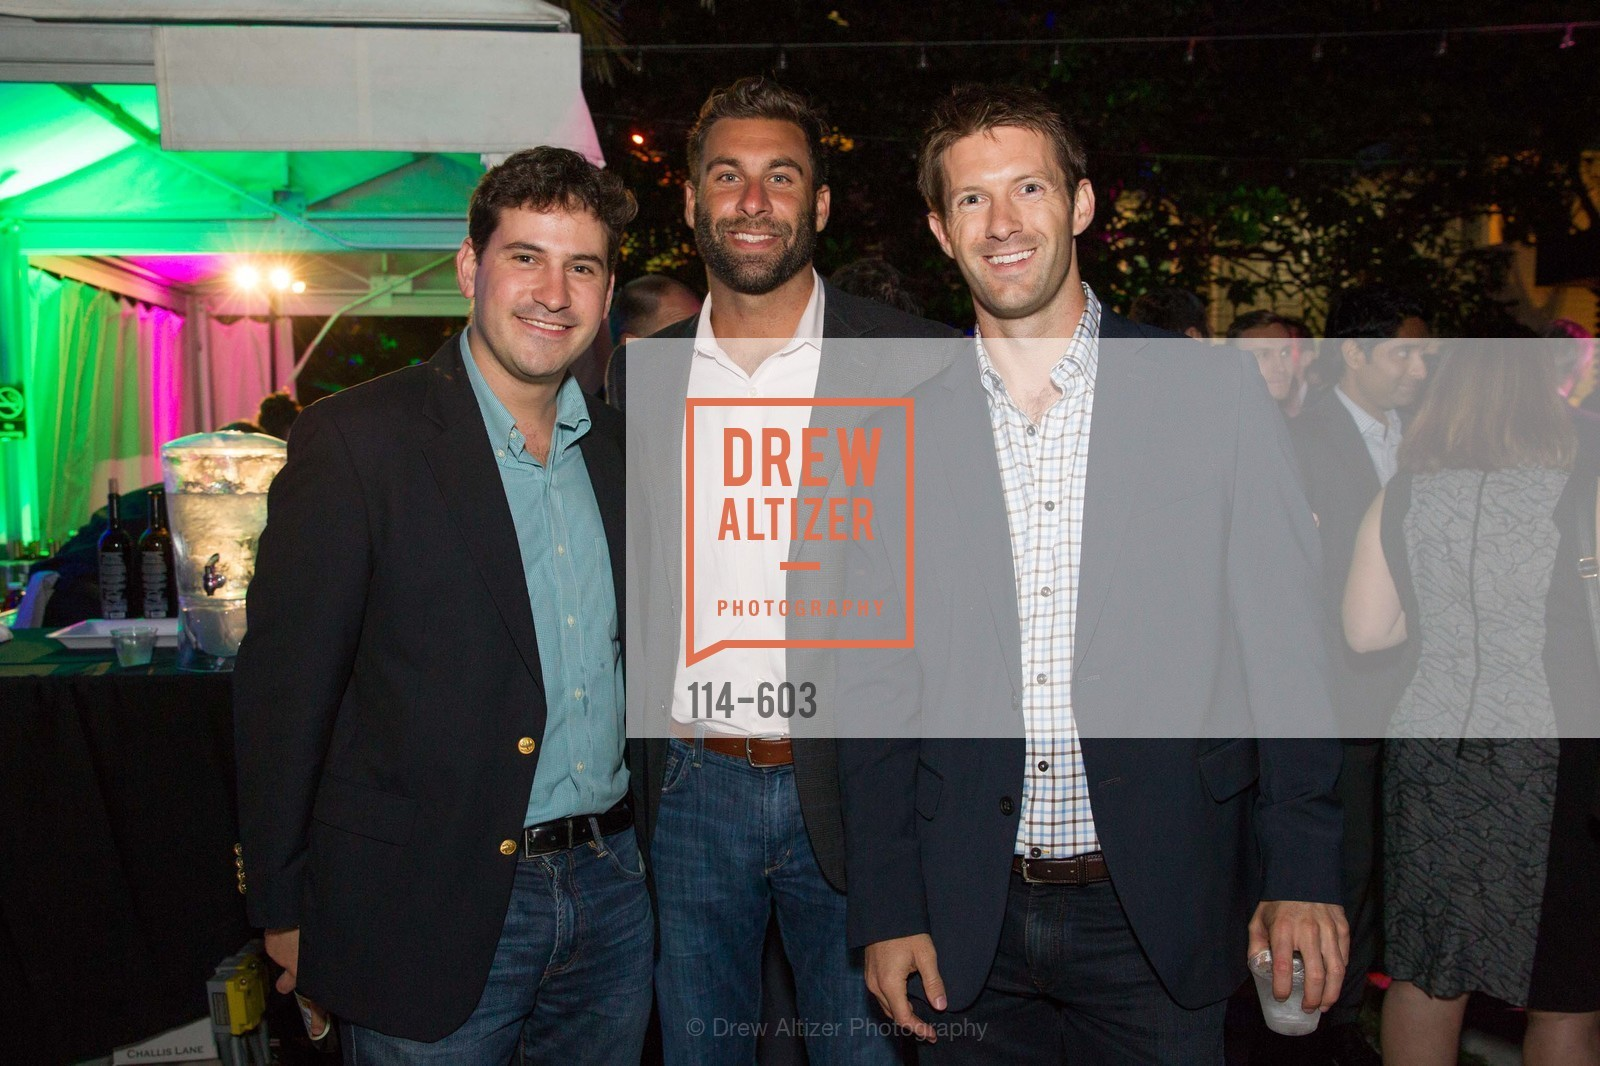 Ross Stackhause, Kevin Joyce, Drew Taylor, 22nd Annual TNDC CELEBRITY POOL TOSS, US, October 9th, 2014,Drew Altizer, Drew Altizer Photography, full-service agency, private events, San Francisco photographer, photographer california